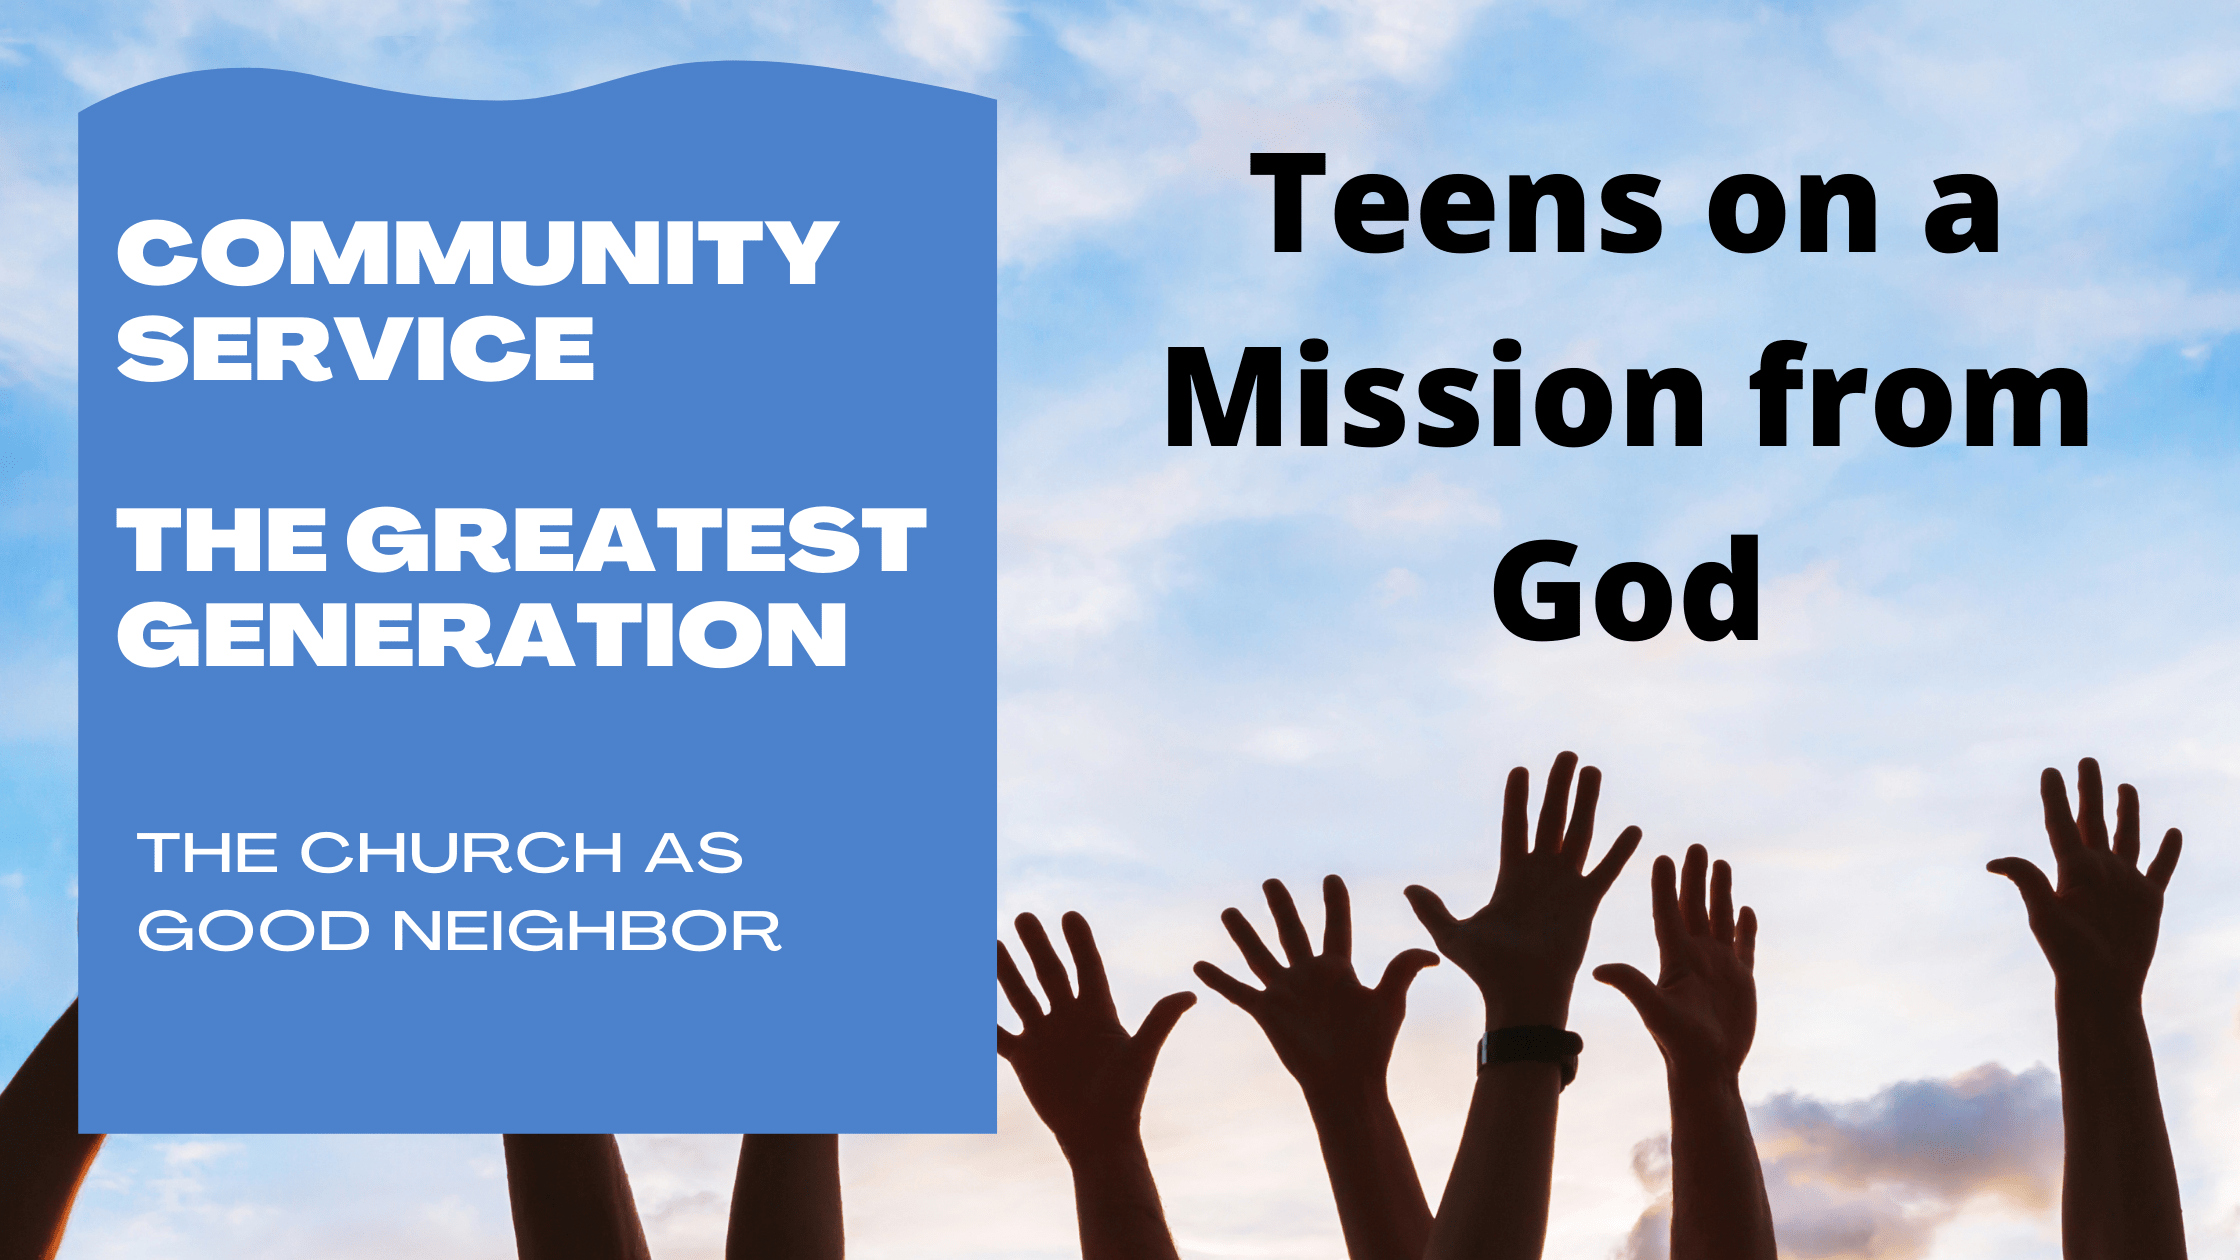 _community service Teens on a Mission from God